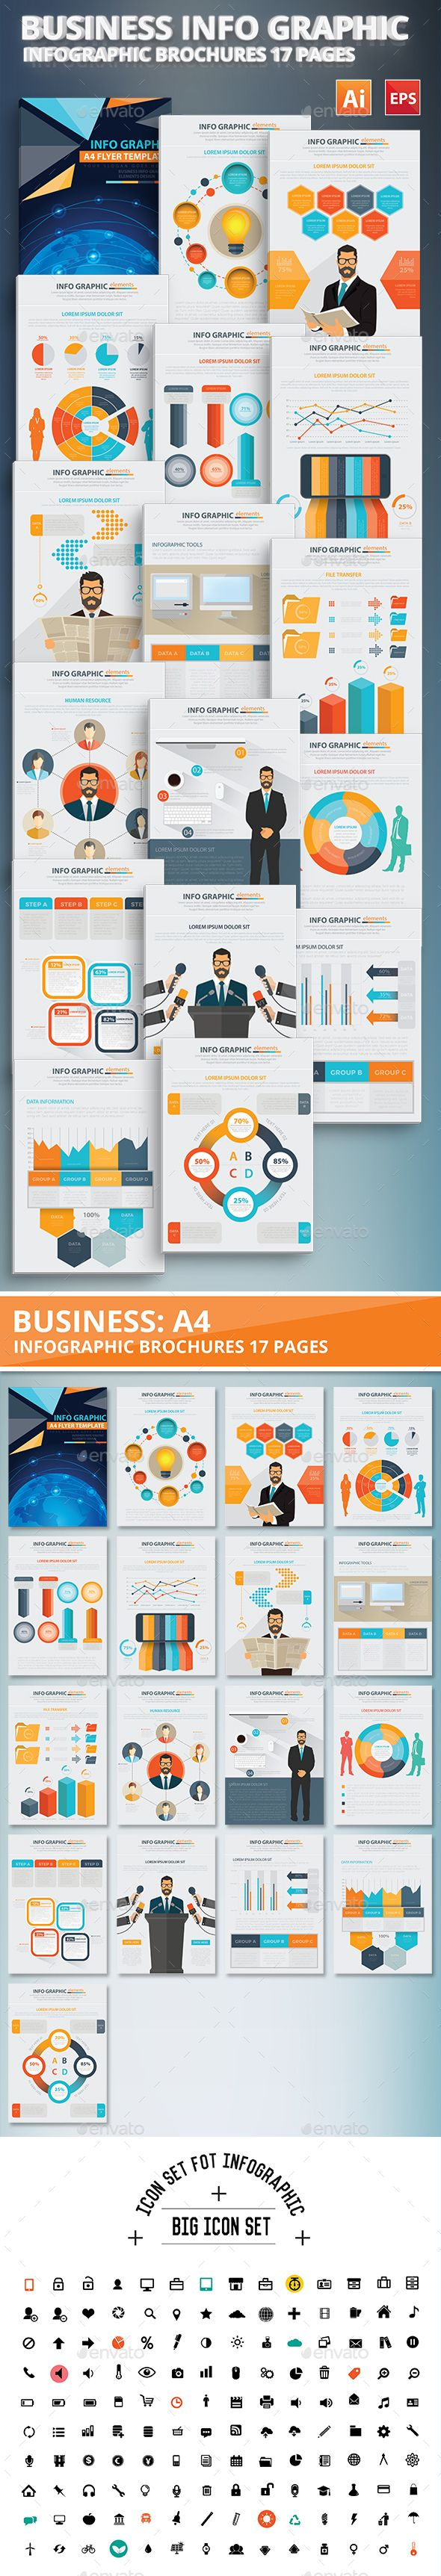 Business Info Graphic Elements Design Template Vector EPS, AI #design Download: http://graphicriver.net/item/business-info-graphic-elements-design/13336867?ref=ksioks